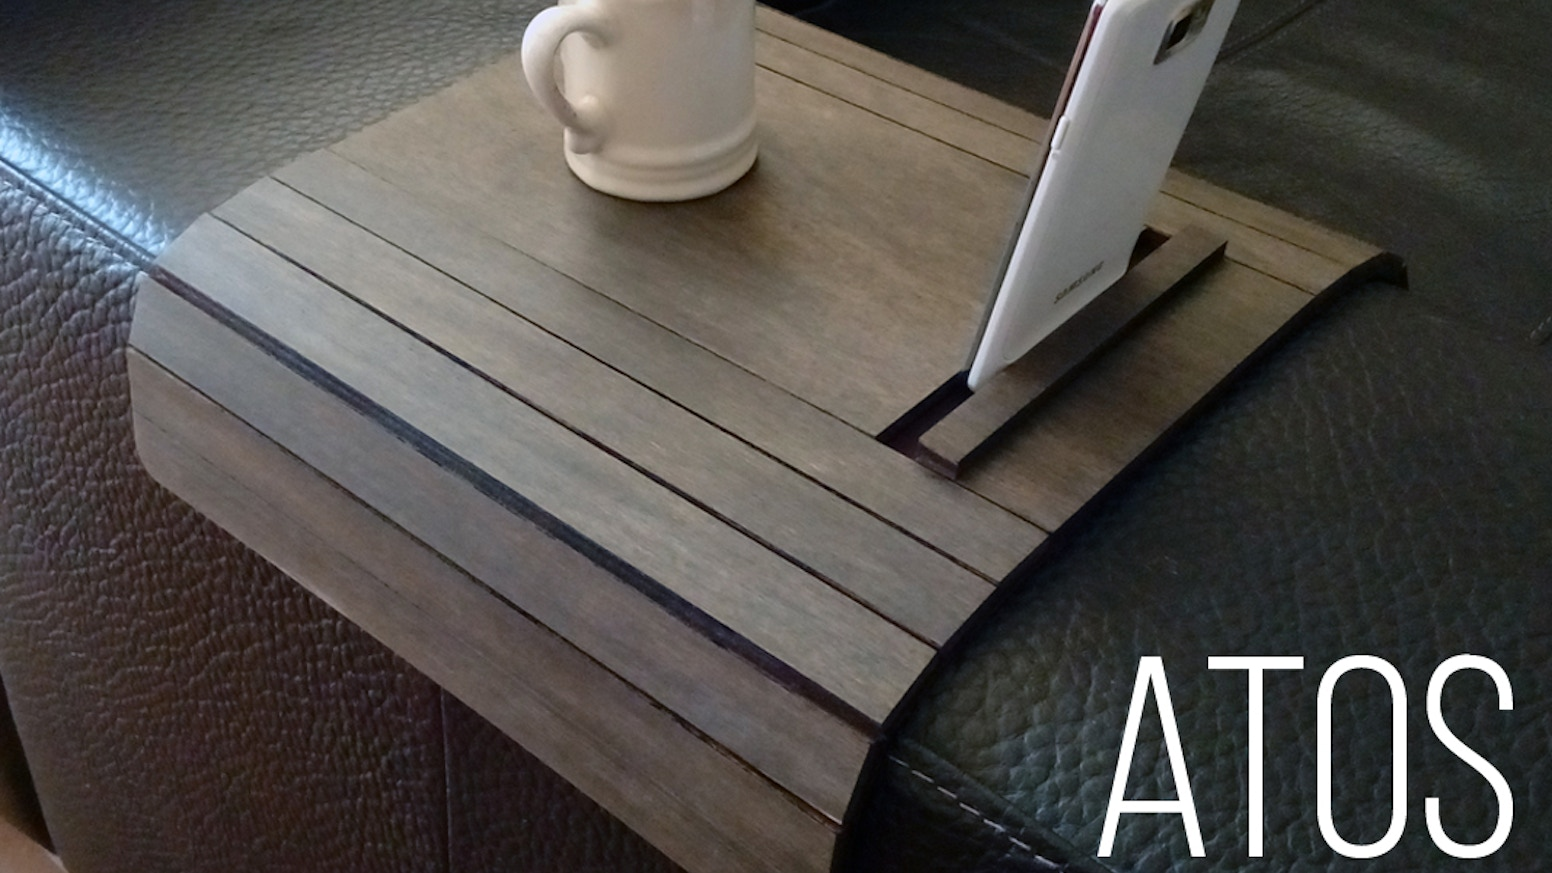 Atos sofa arm rest table with cell phone and tablet stand by atos sofa arm rest table with cell phone and tablet stand watchthetrailerfo